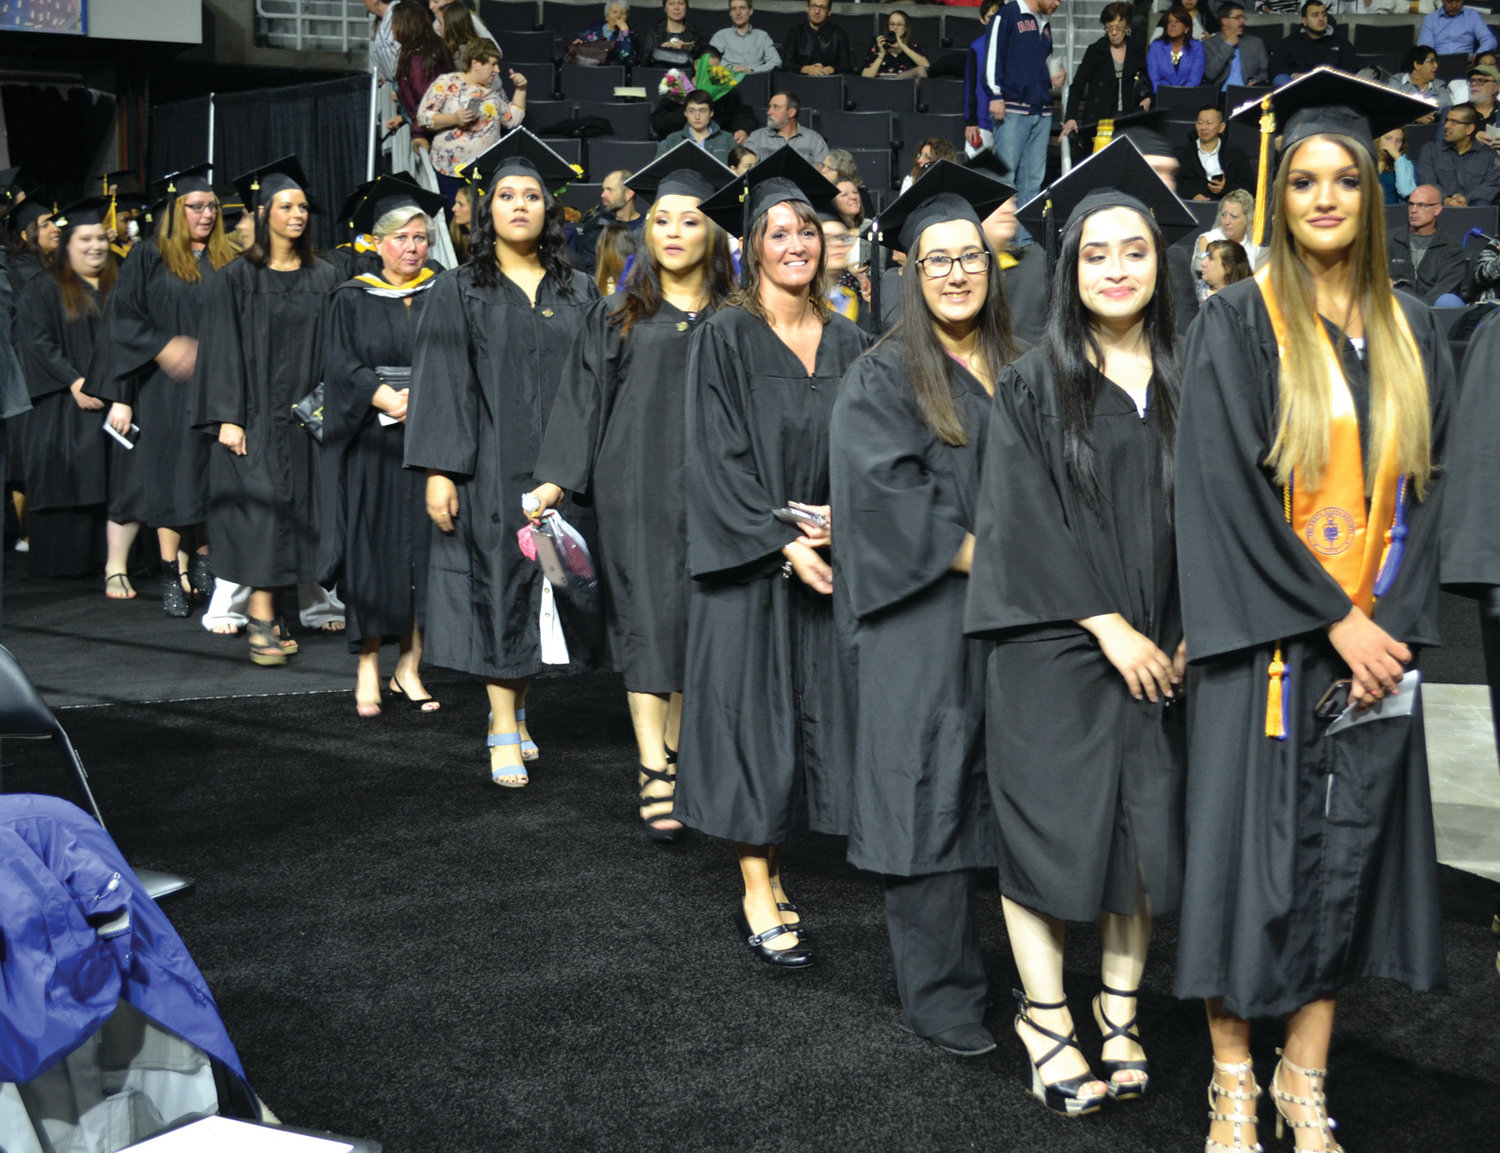 IN THE SPOTLIGHT: New England Institute of Technology graduates made their way into the Dunkin' Donuts Center in Providence on Sunday to the cheers of loved ones in the audience.